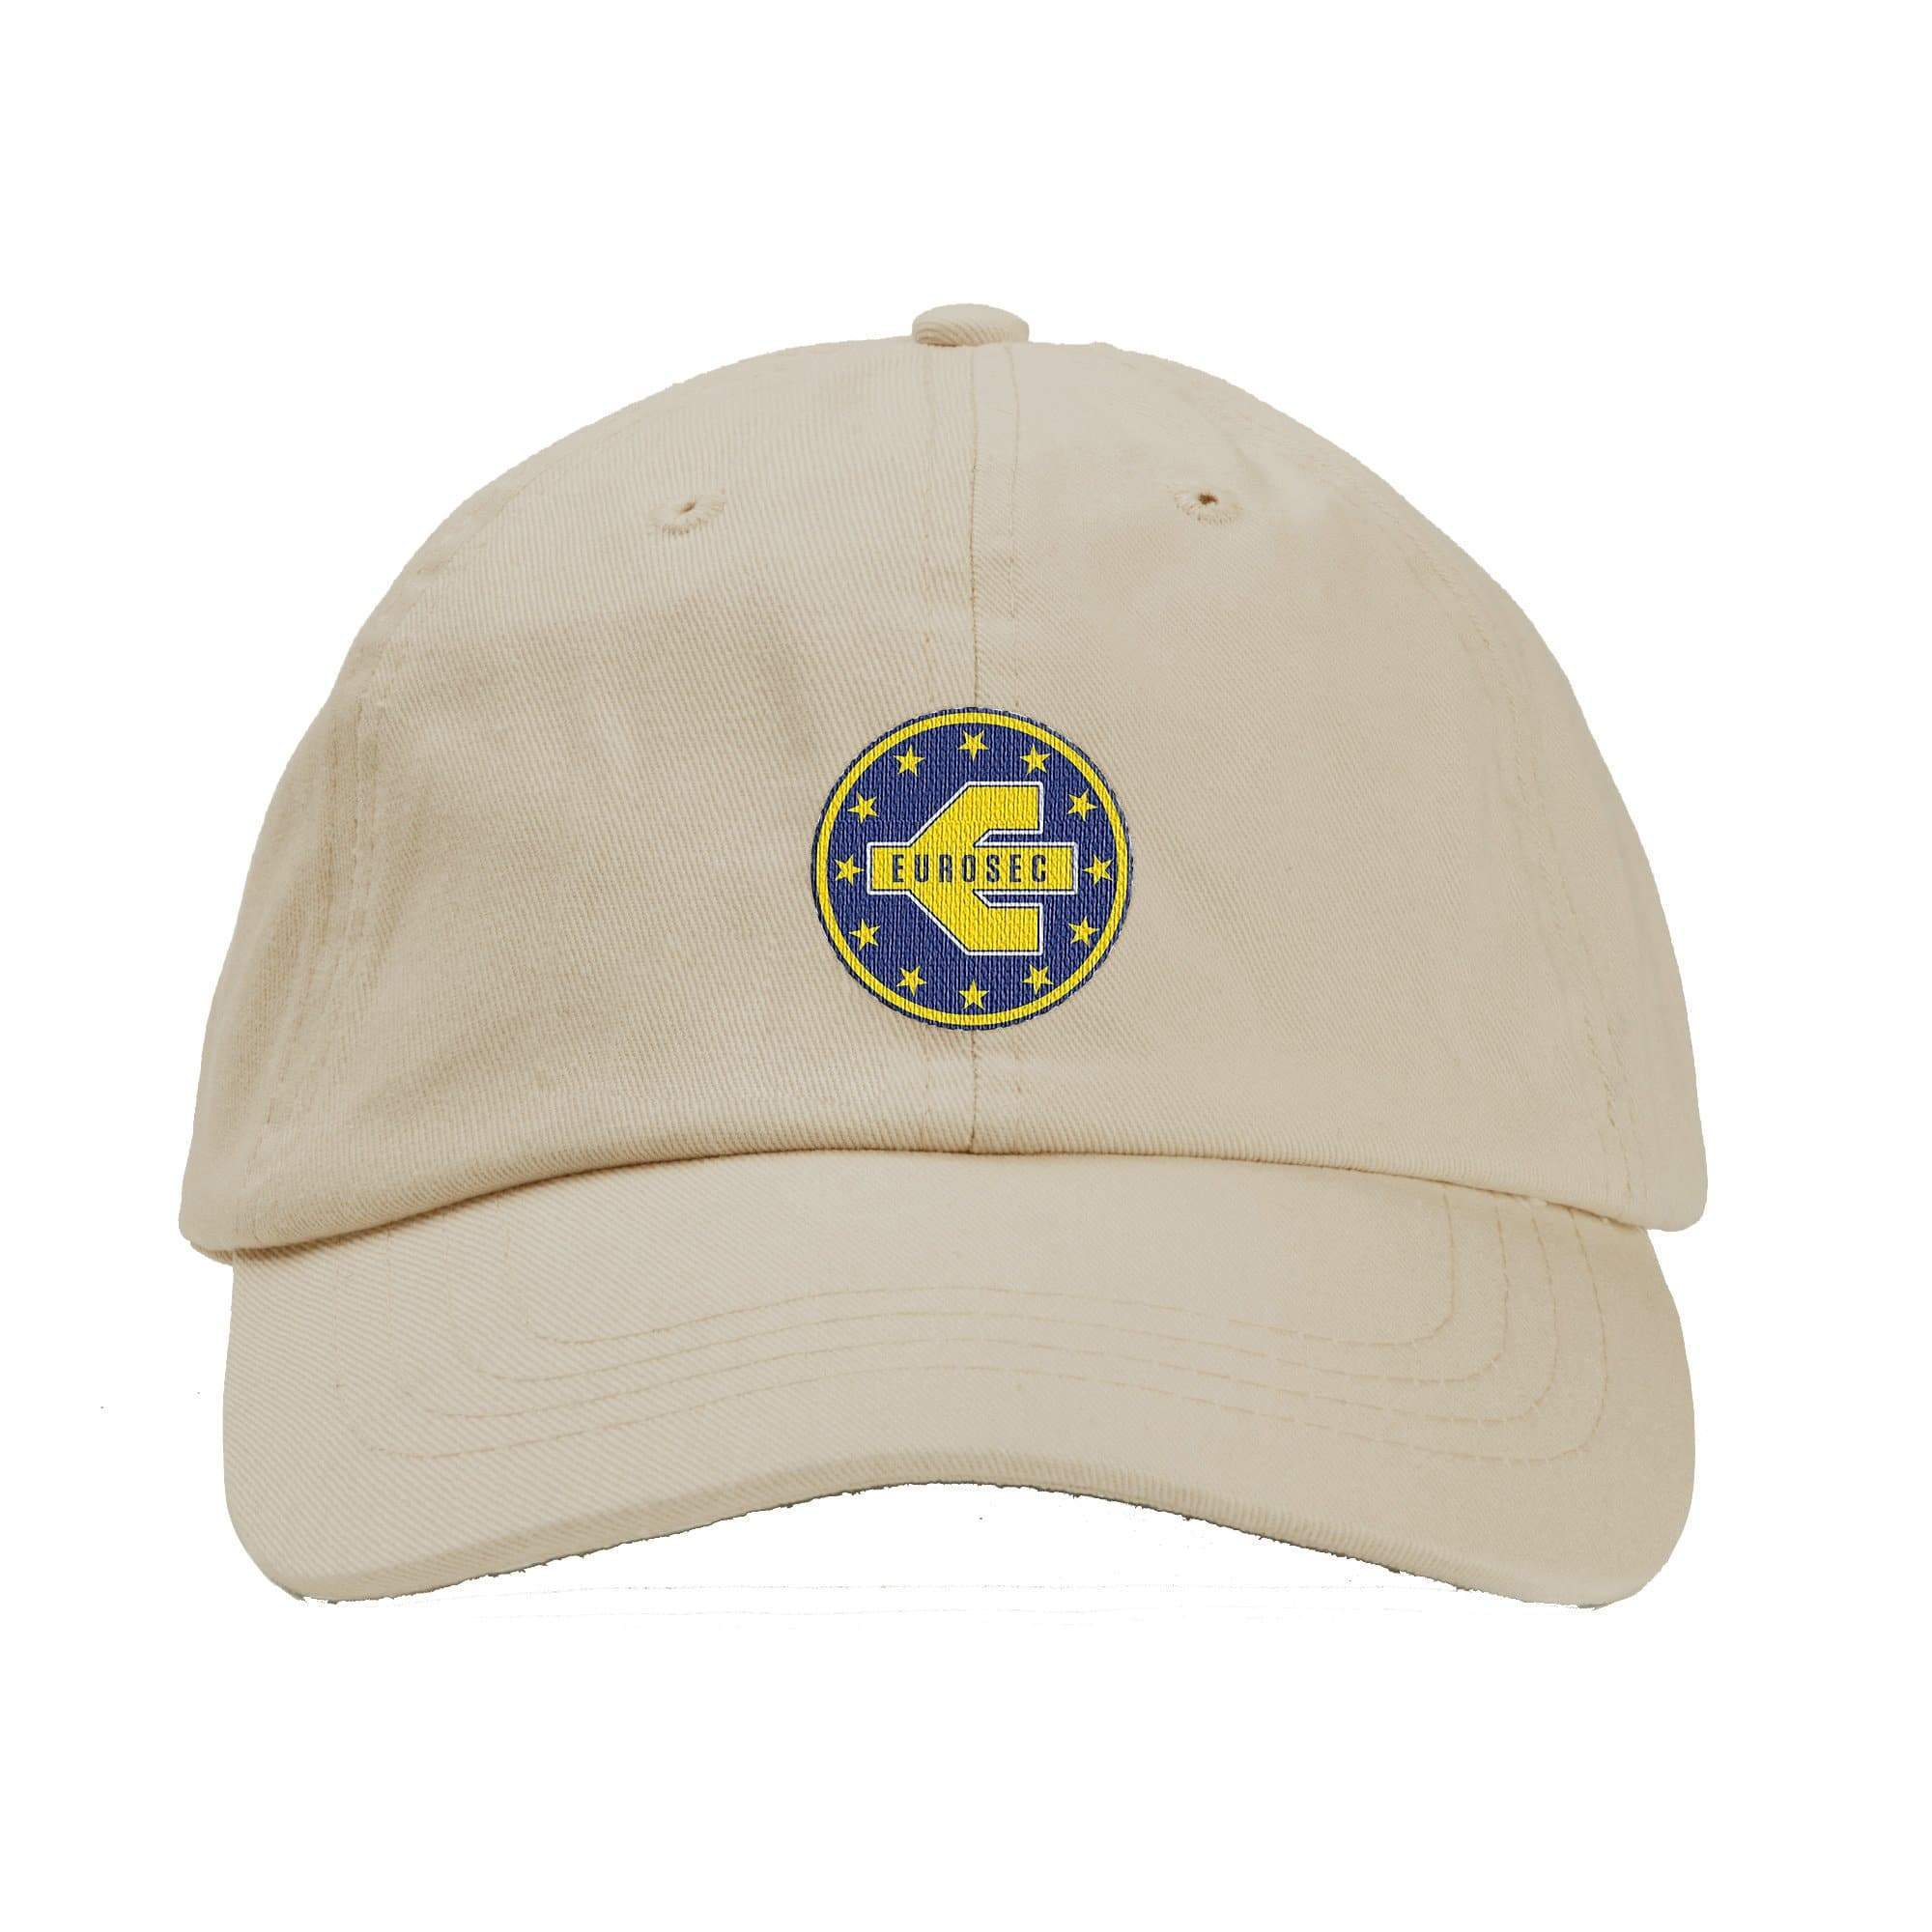 Eurosec Logo Baseball Cap - The Gerry Anderson Store